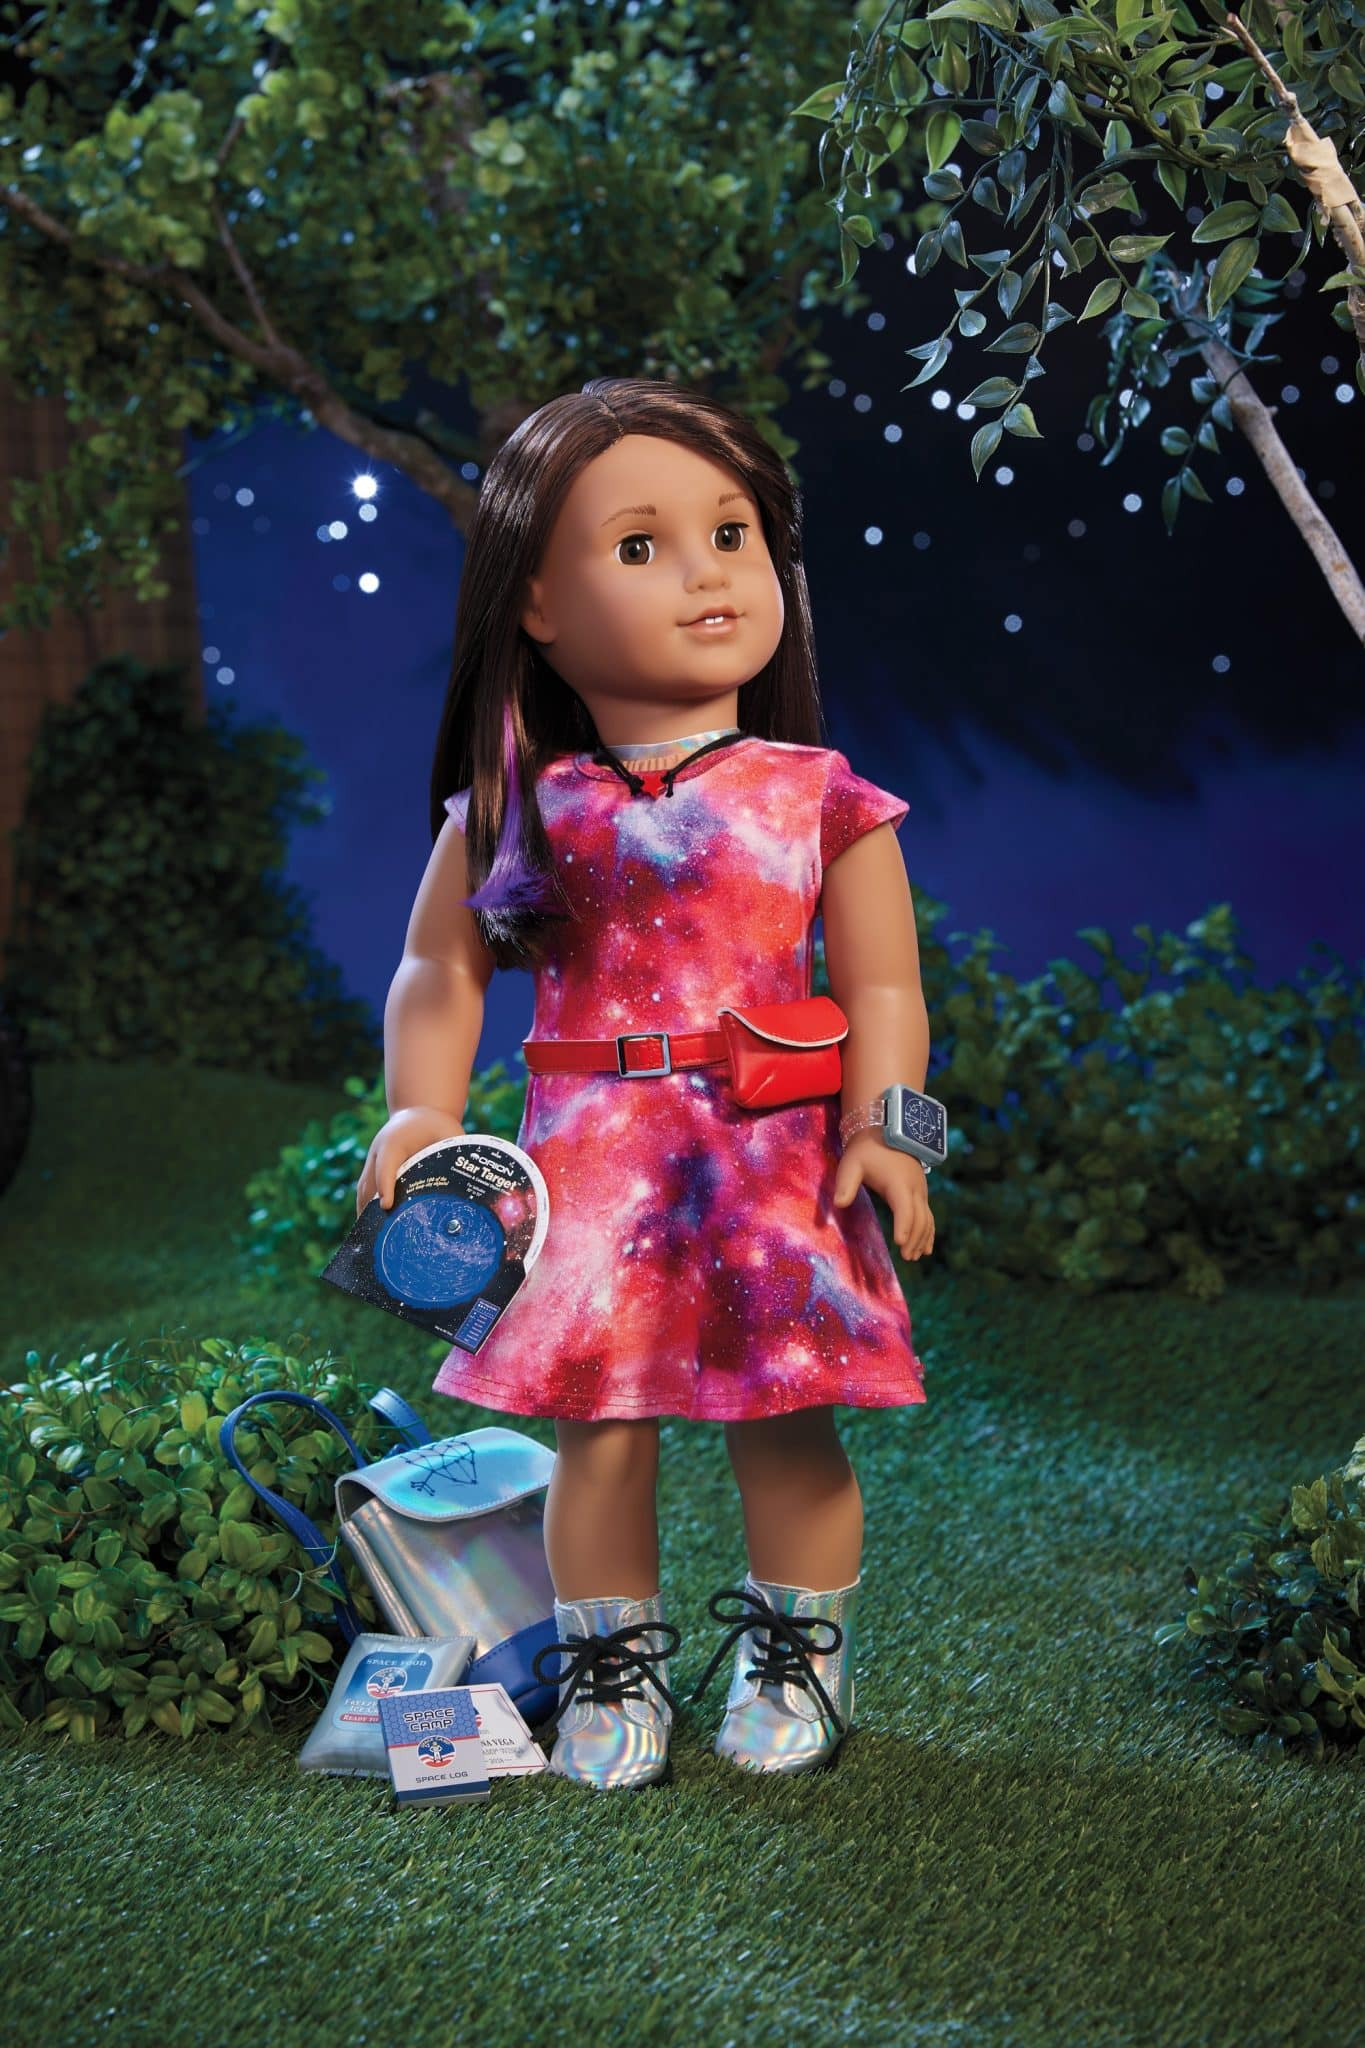 American Girl's Doll of the Year, Luciana Vega!! @American_Girl